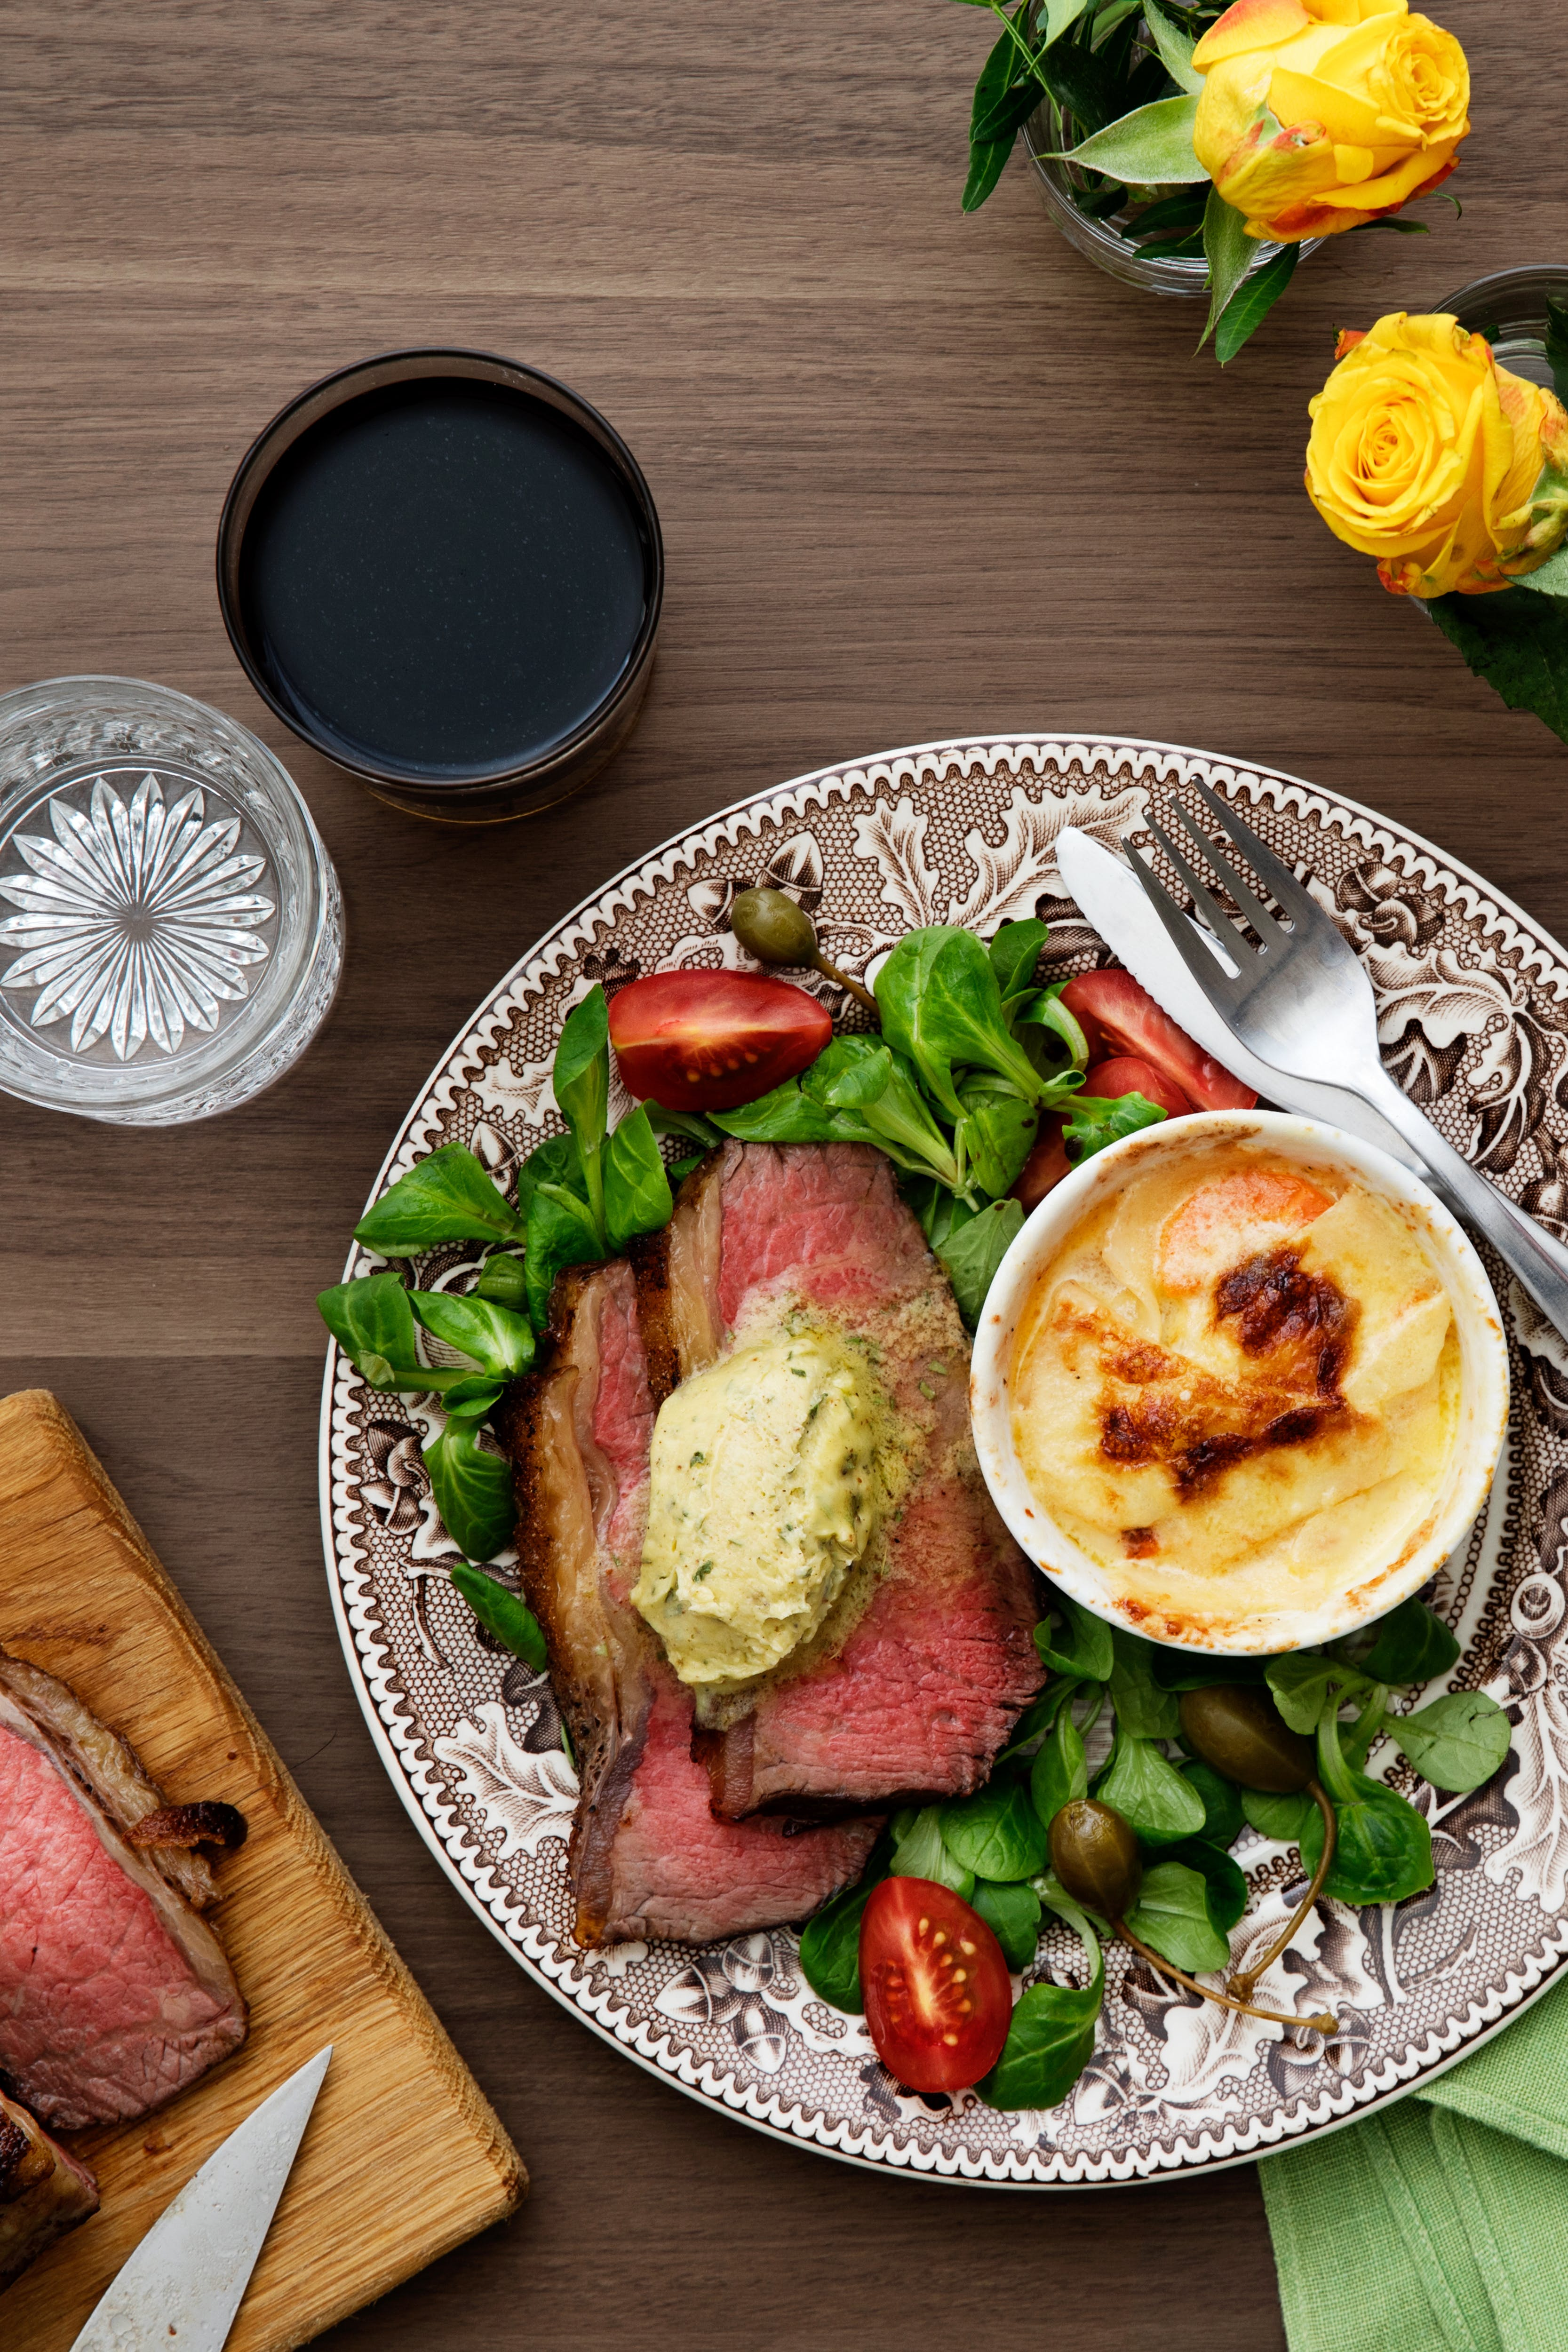 Beef sirloin with tarragon butter and creamy gratin